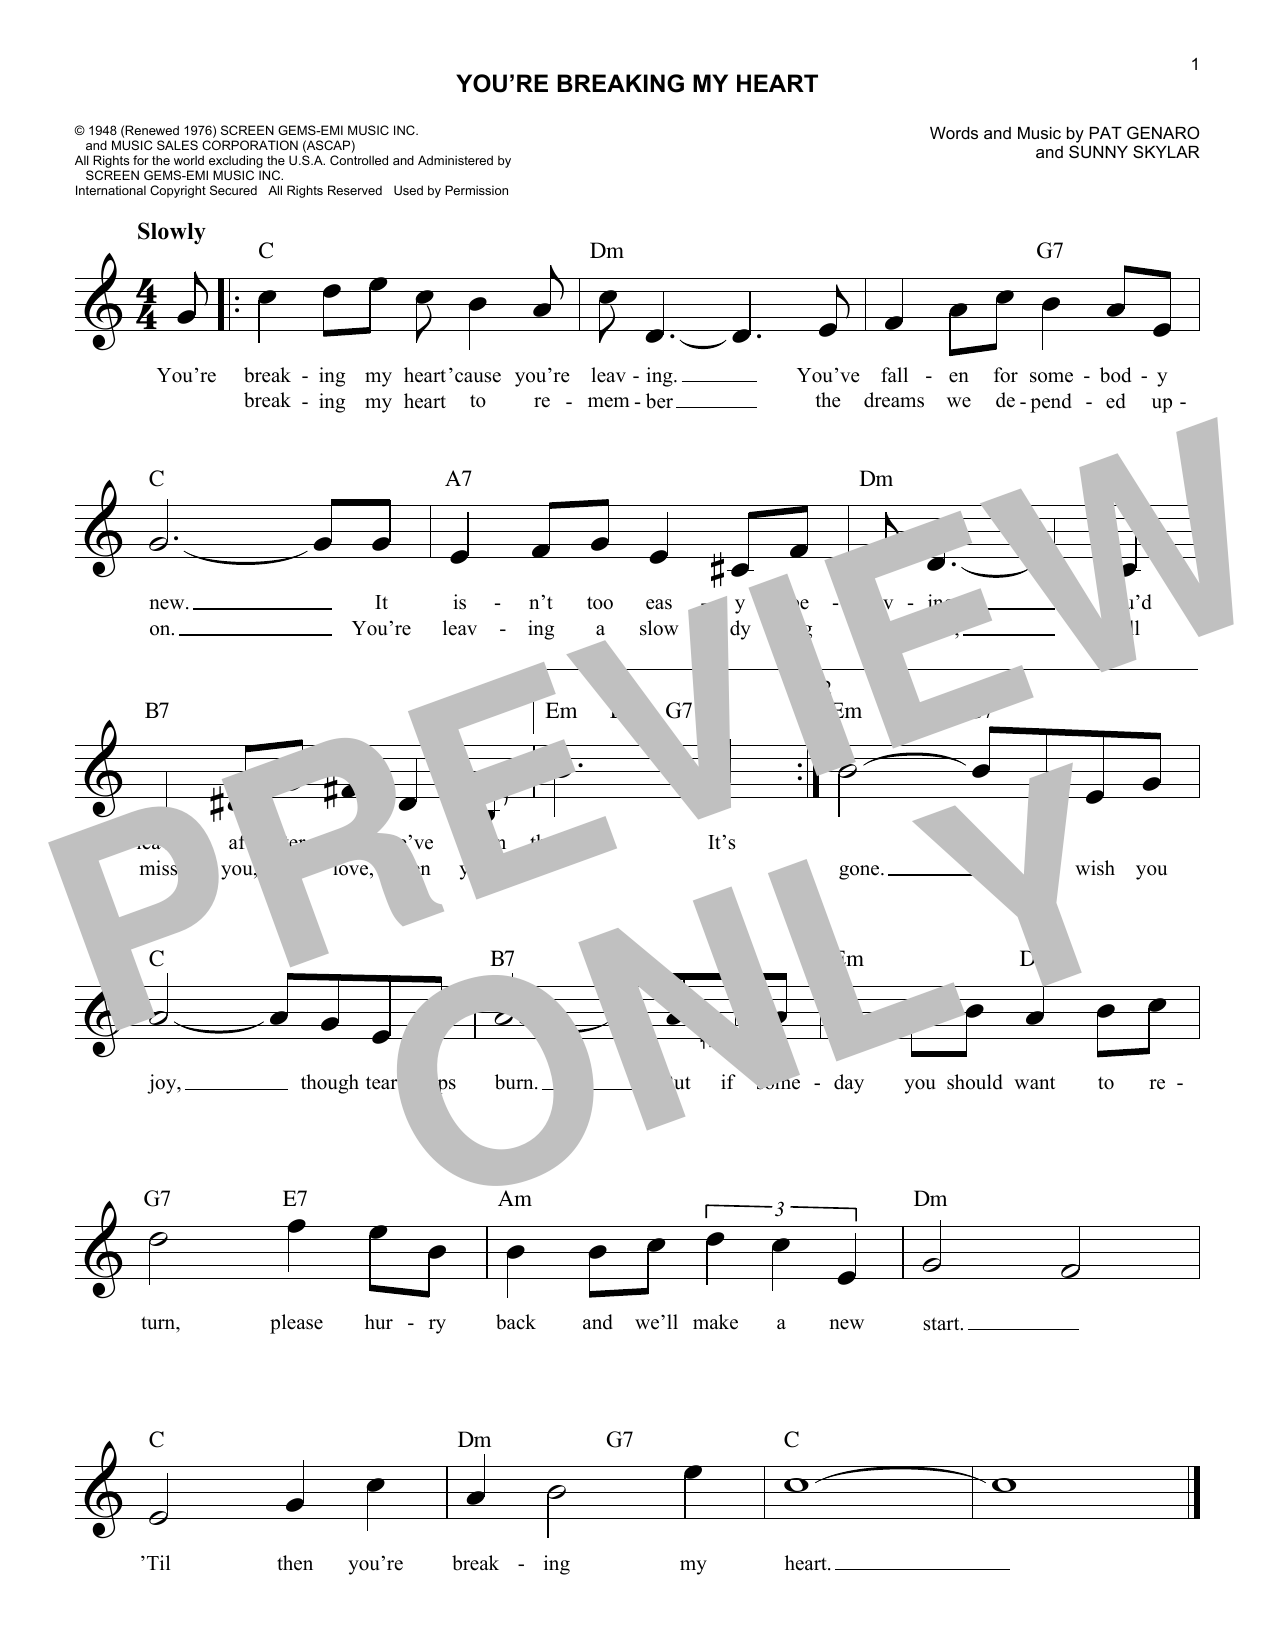 Vic Damone You're Breaking My Heart sheet music notes and chords. Download Printable PDF.